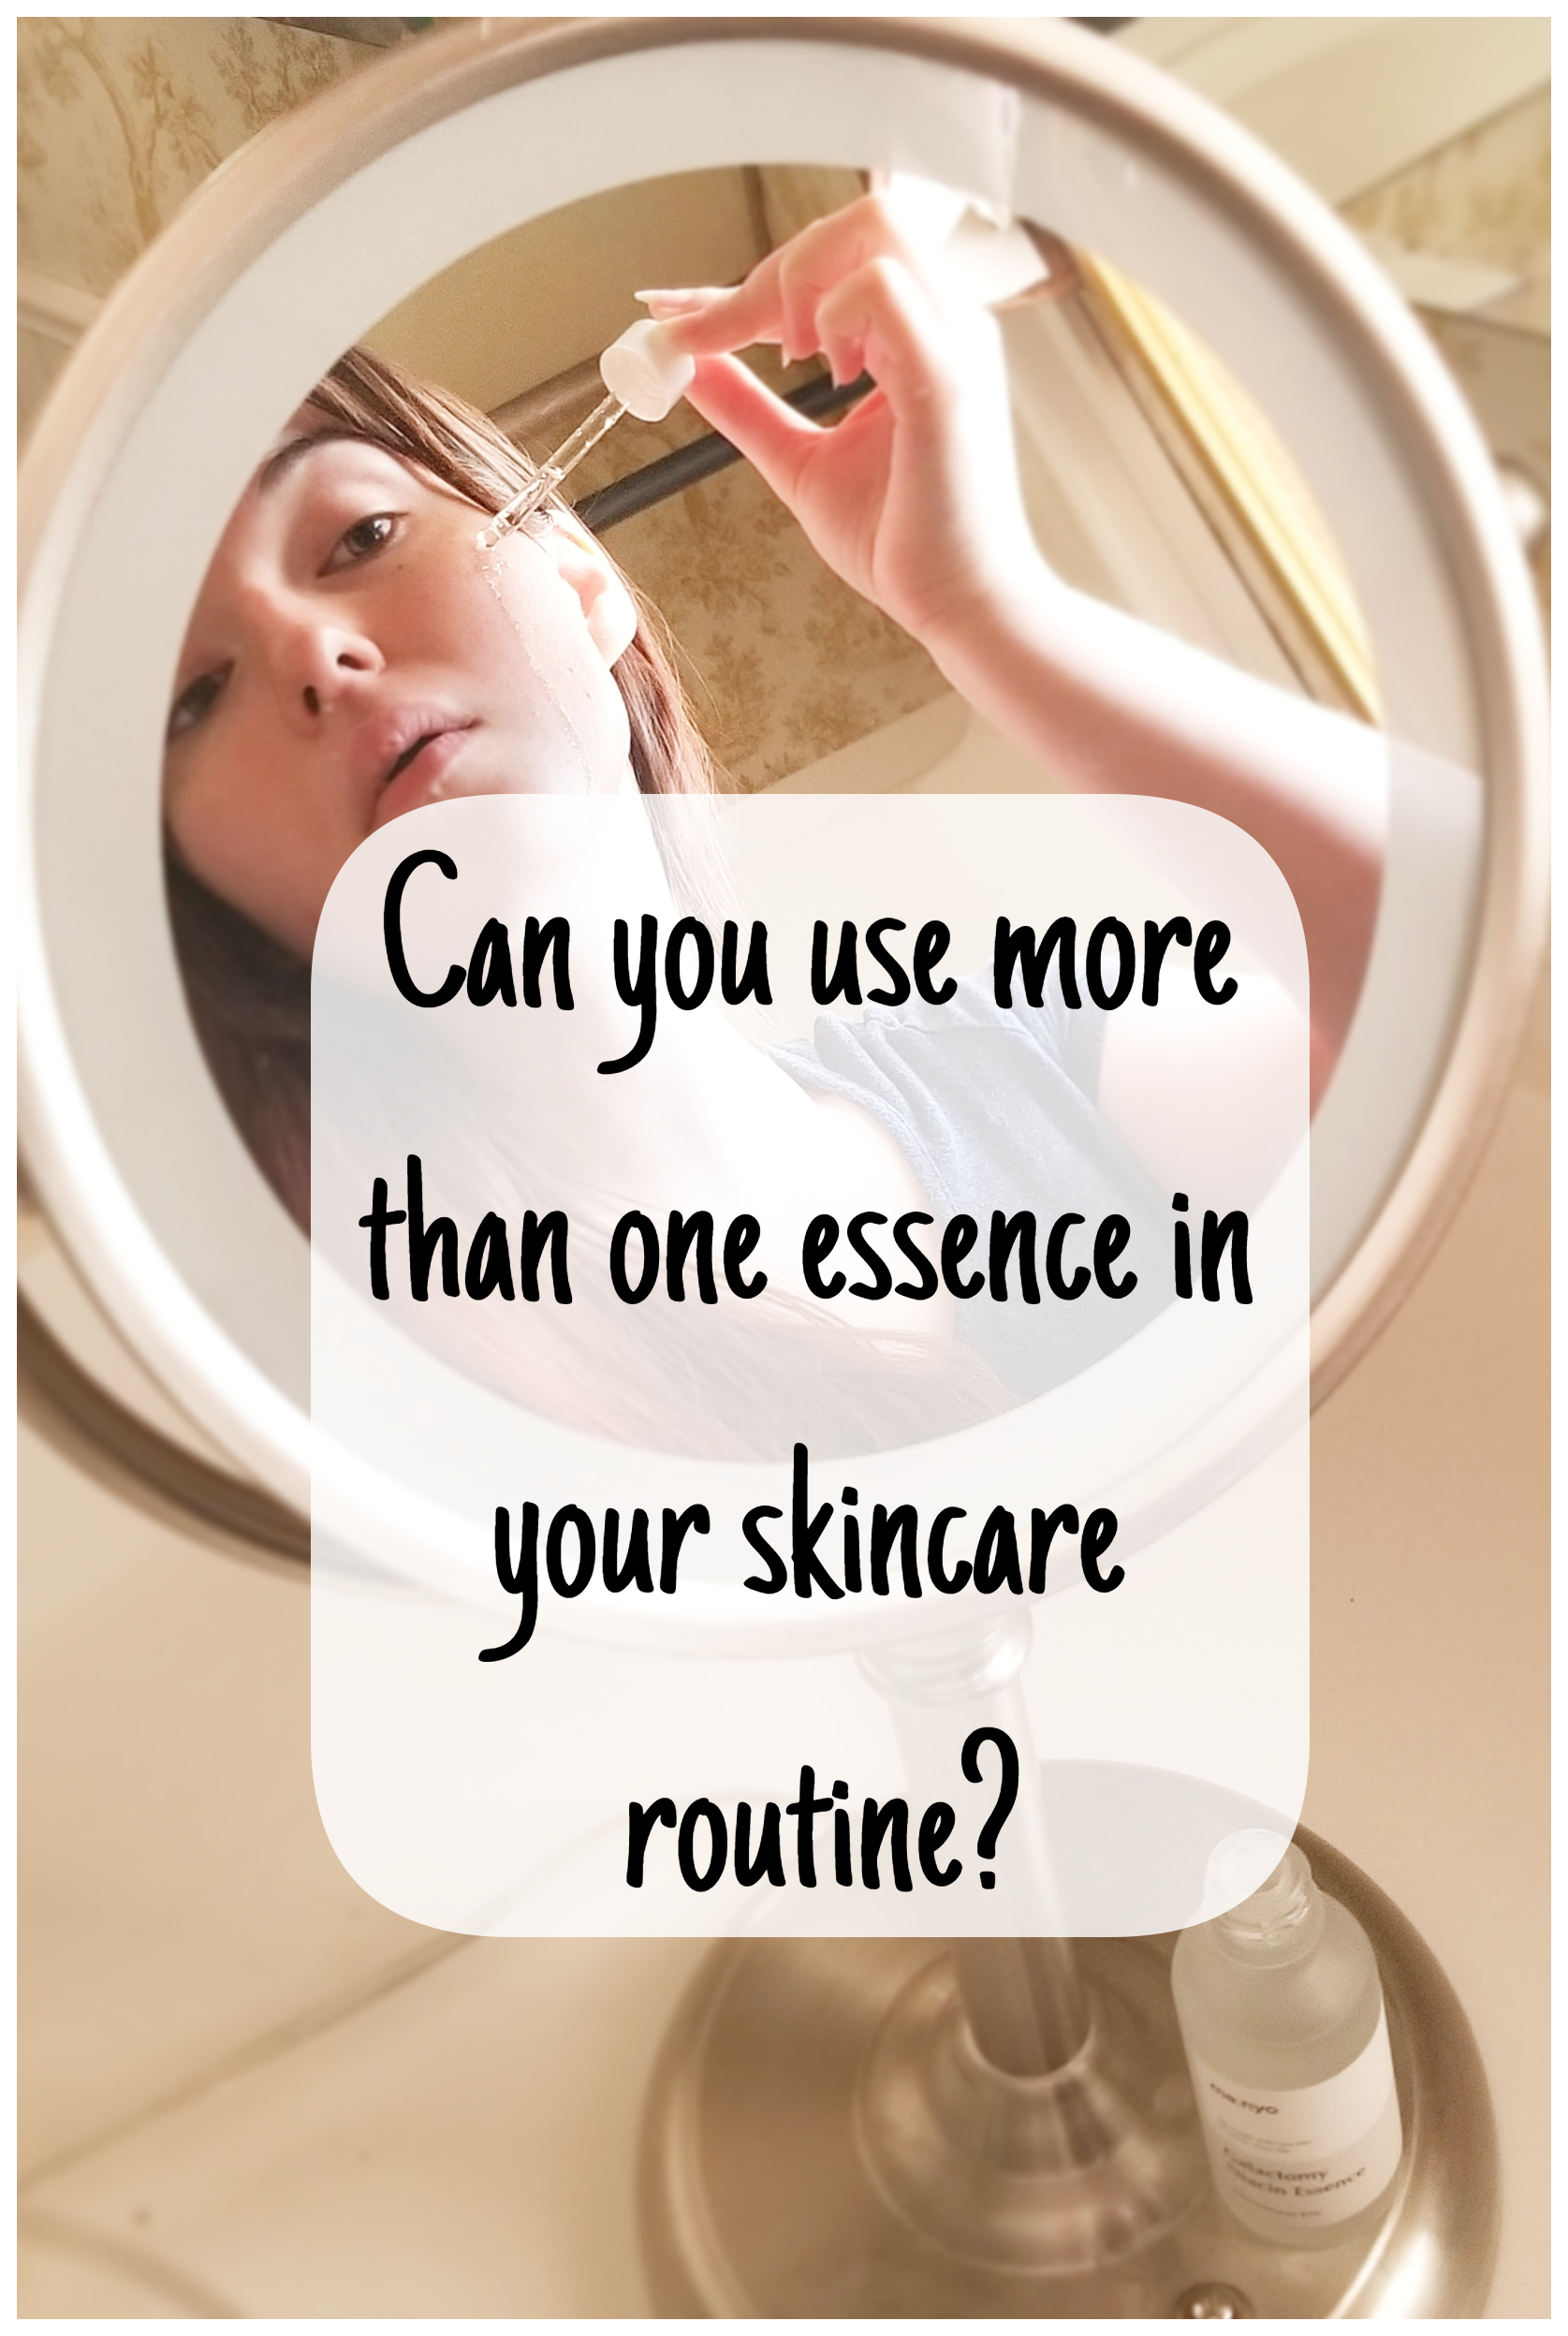 Here's how to use more than one essence at a time in your skincare routine!